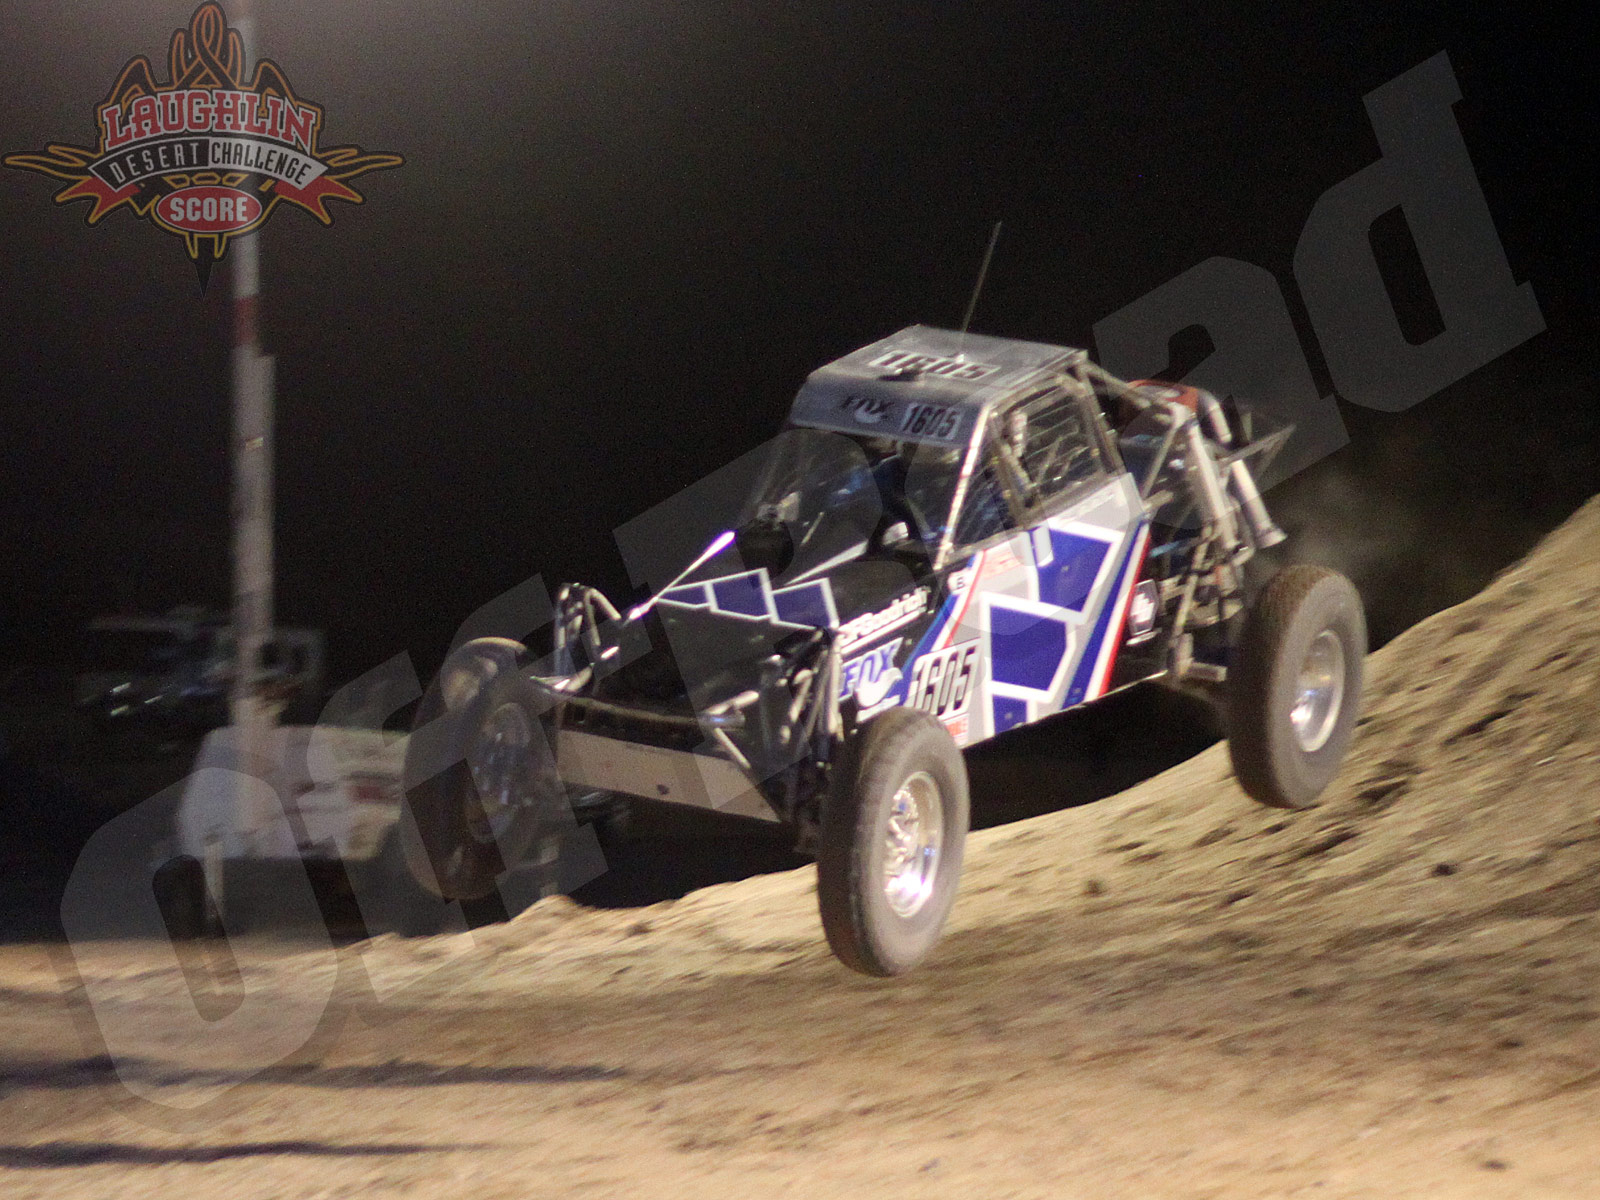 012611or 5165+2011 score laughlin desert challenge+laughlin leap